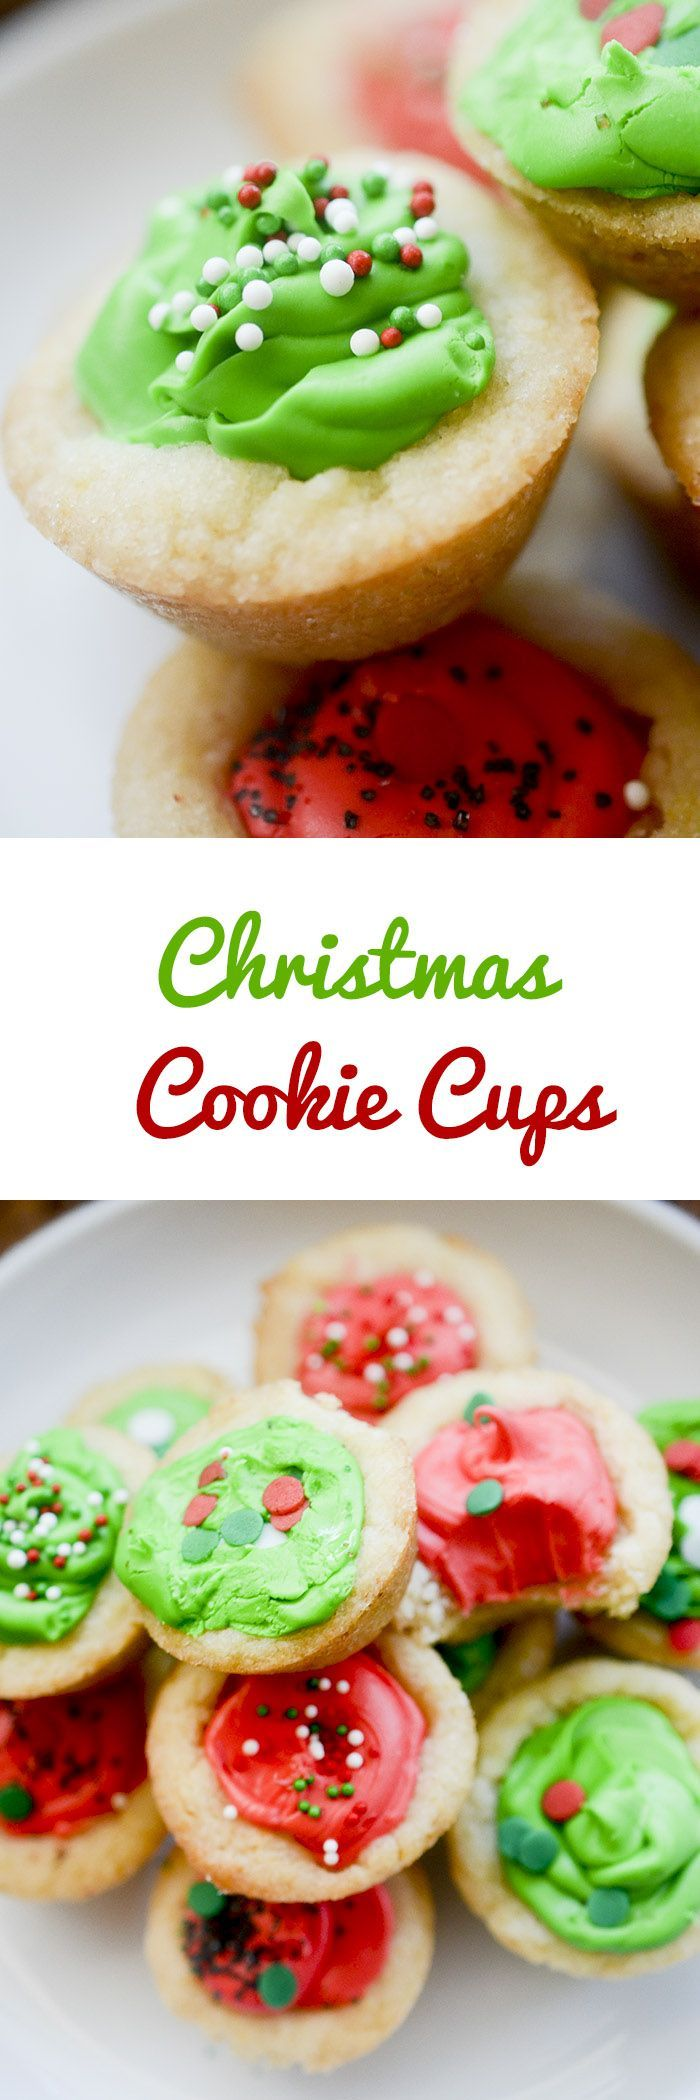 Christmas Cookie Cups - simple cookie idea for your holiday baking.